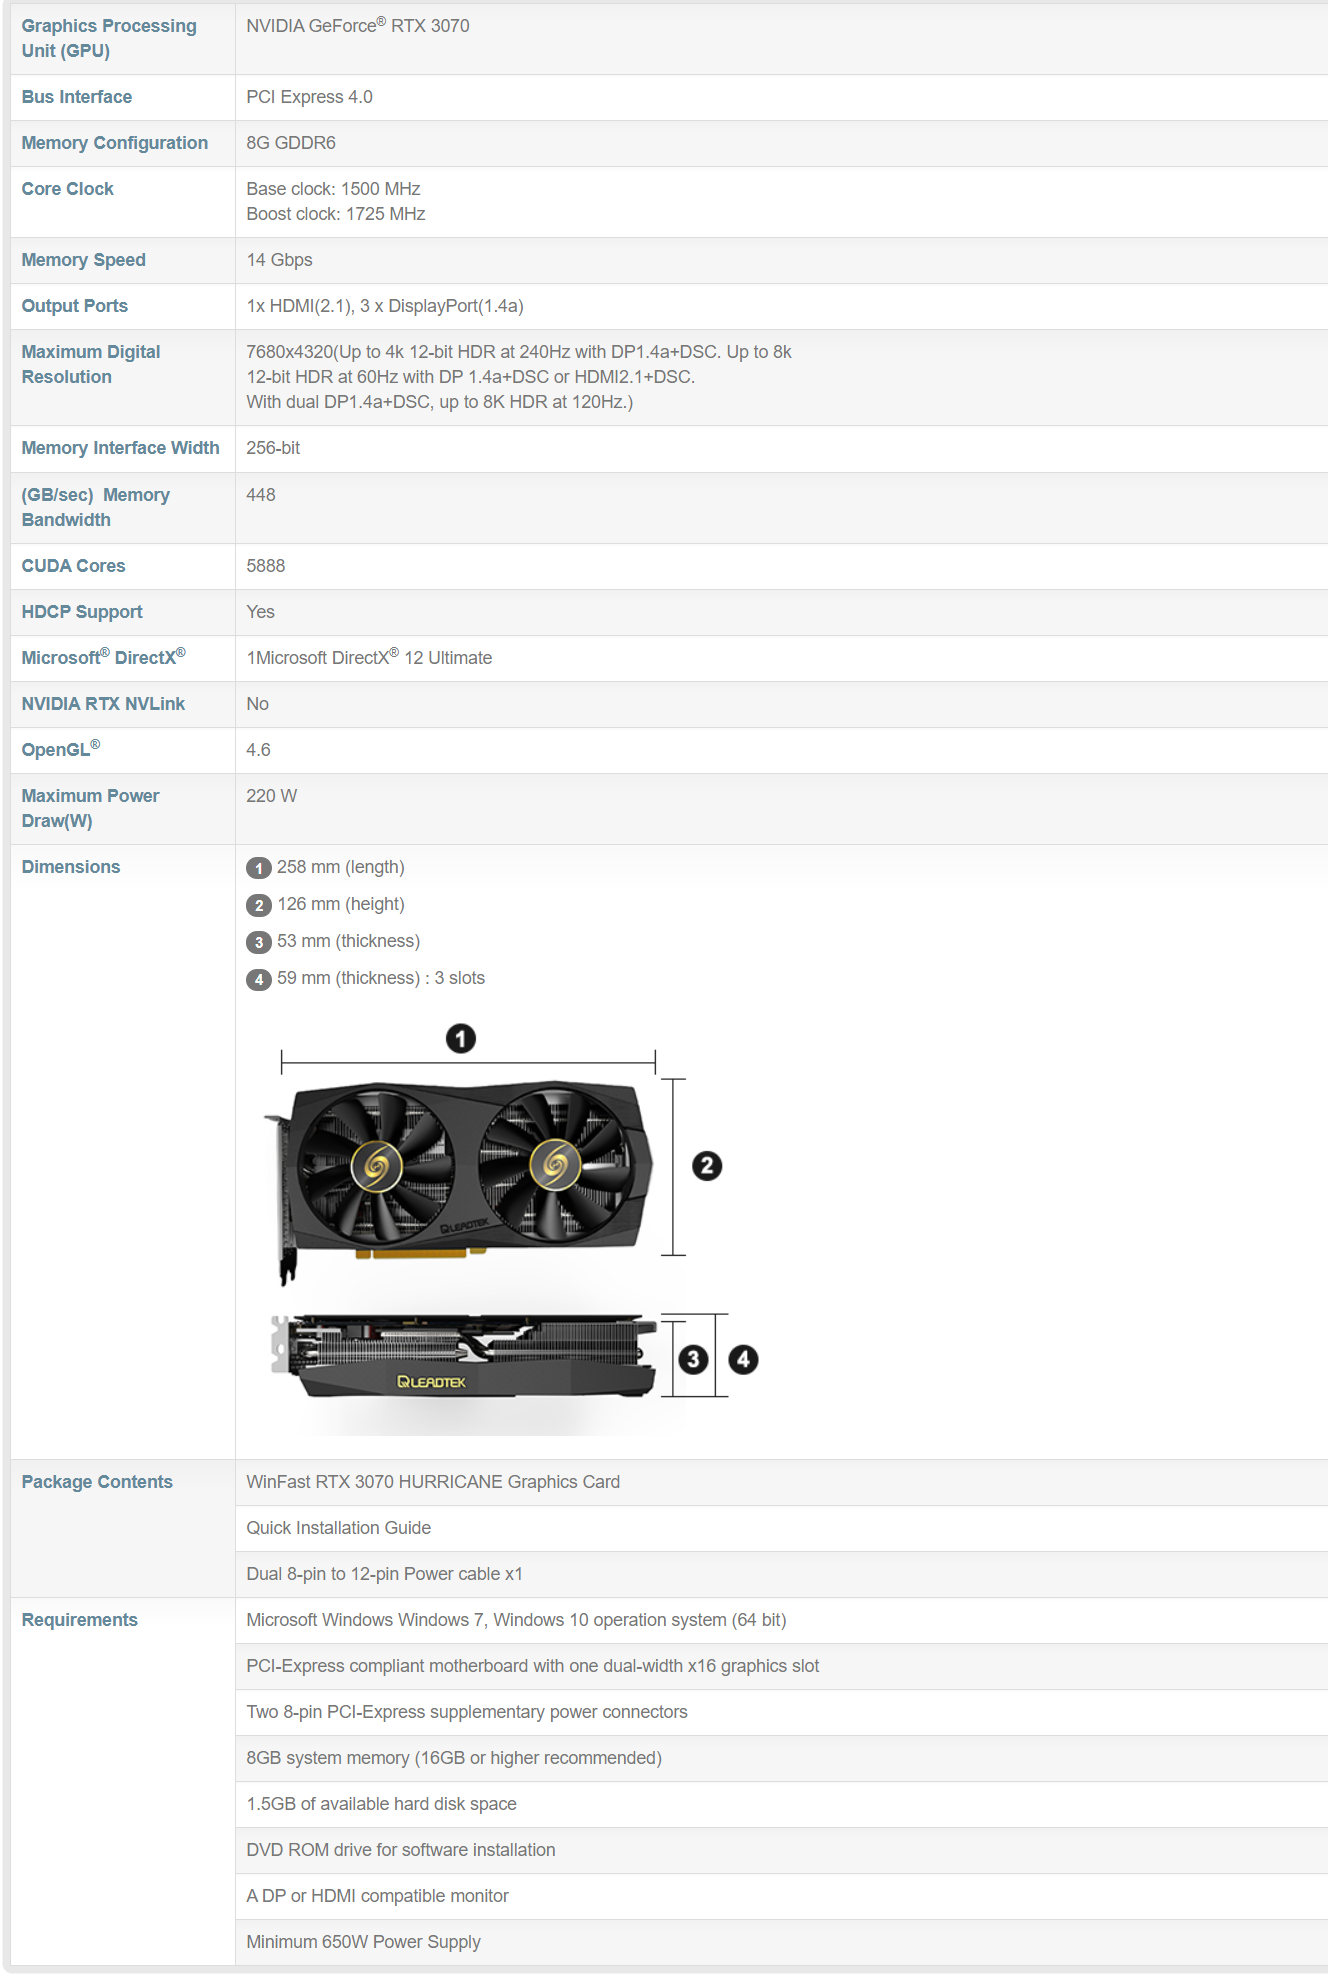 screencapture-leadtek-eng-products-graphics-cards-1-WinFast-RTX-3070-HURRICANE-30898-detail-2020-12-16-18_13_09.png